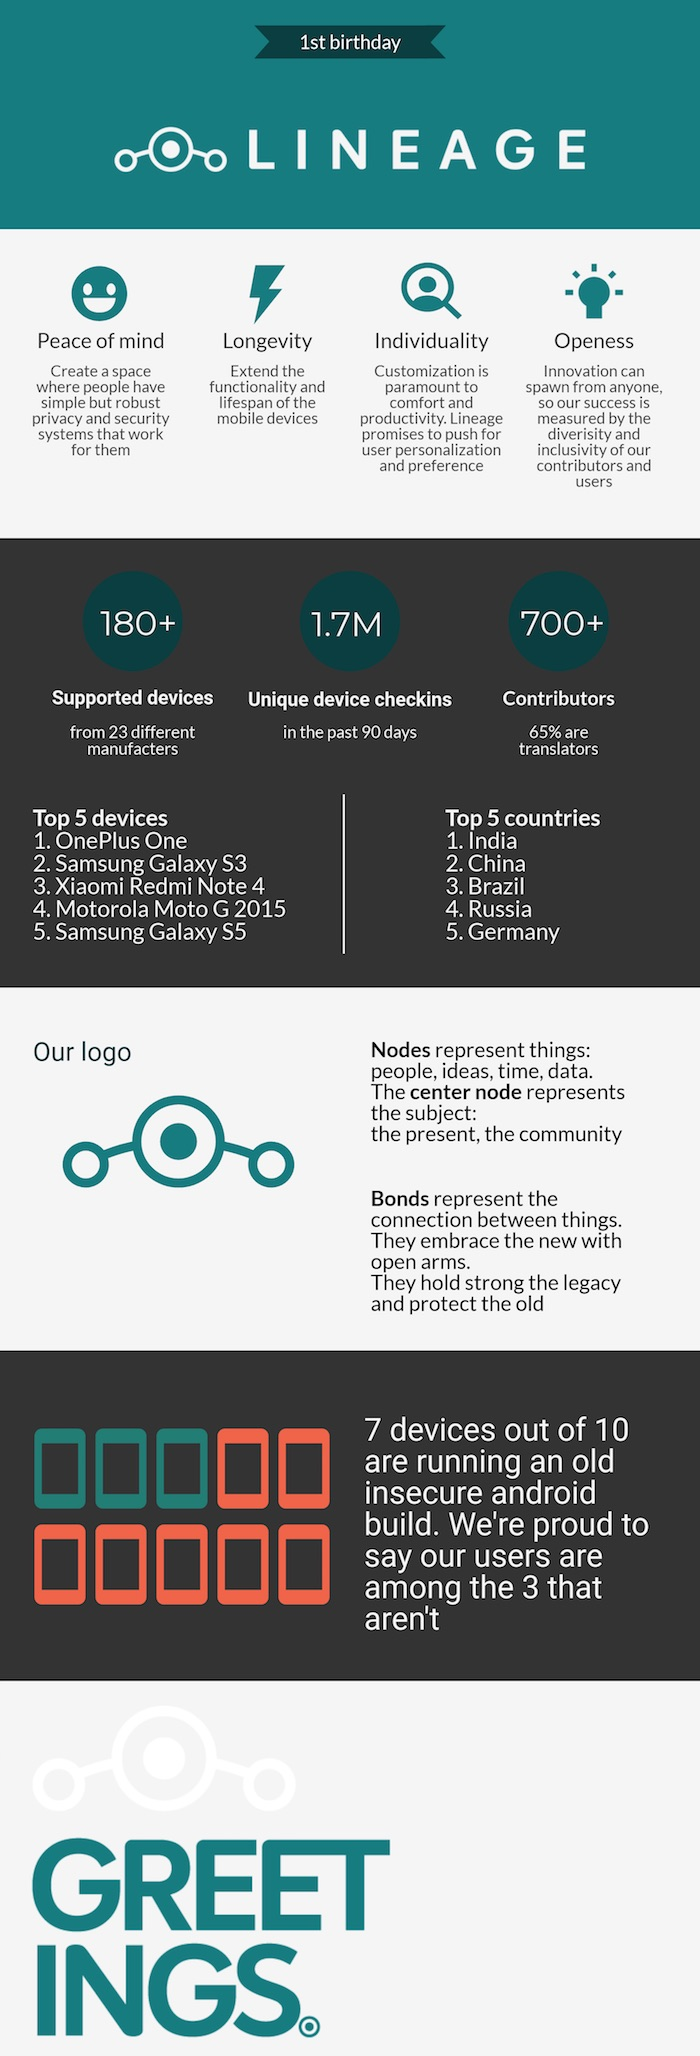 LineageOS Infographie 1 An